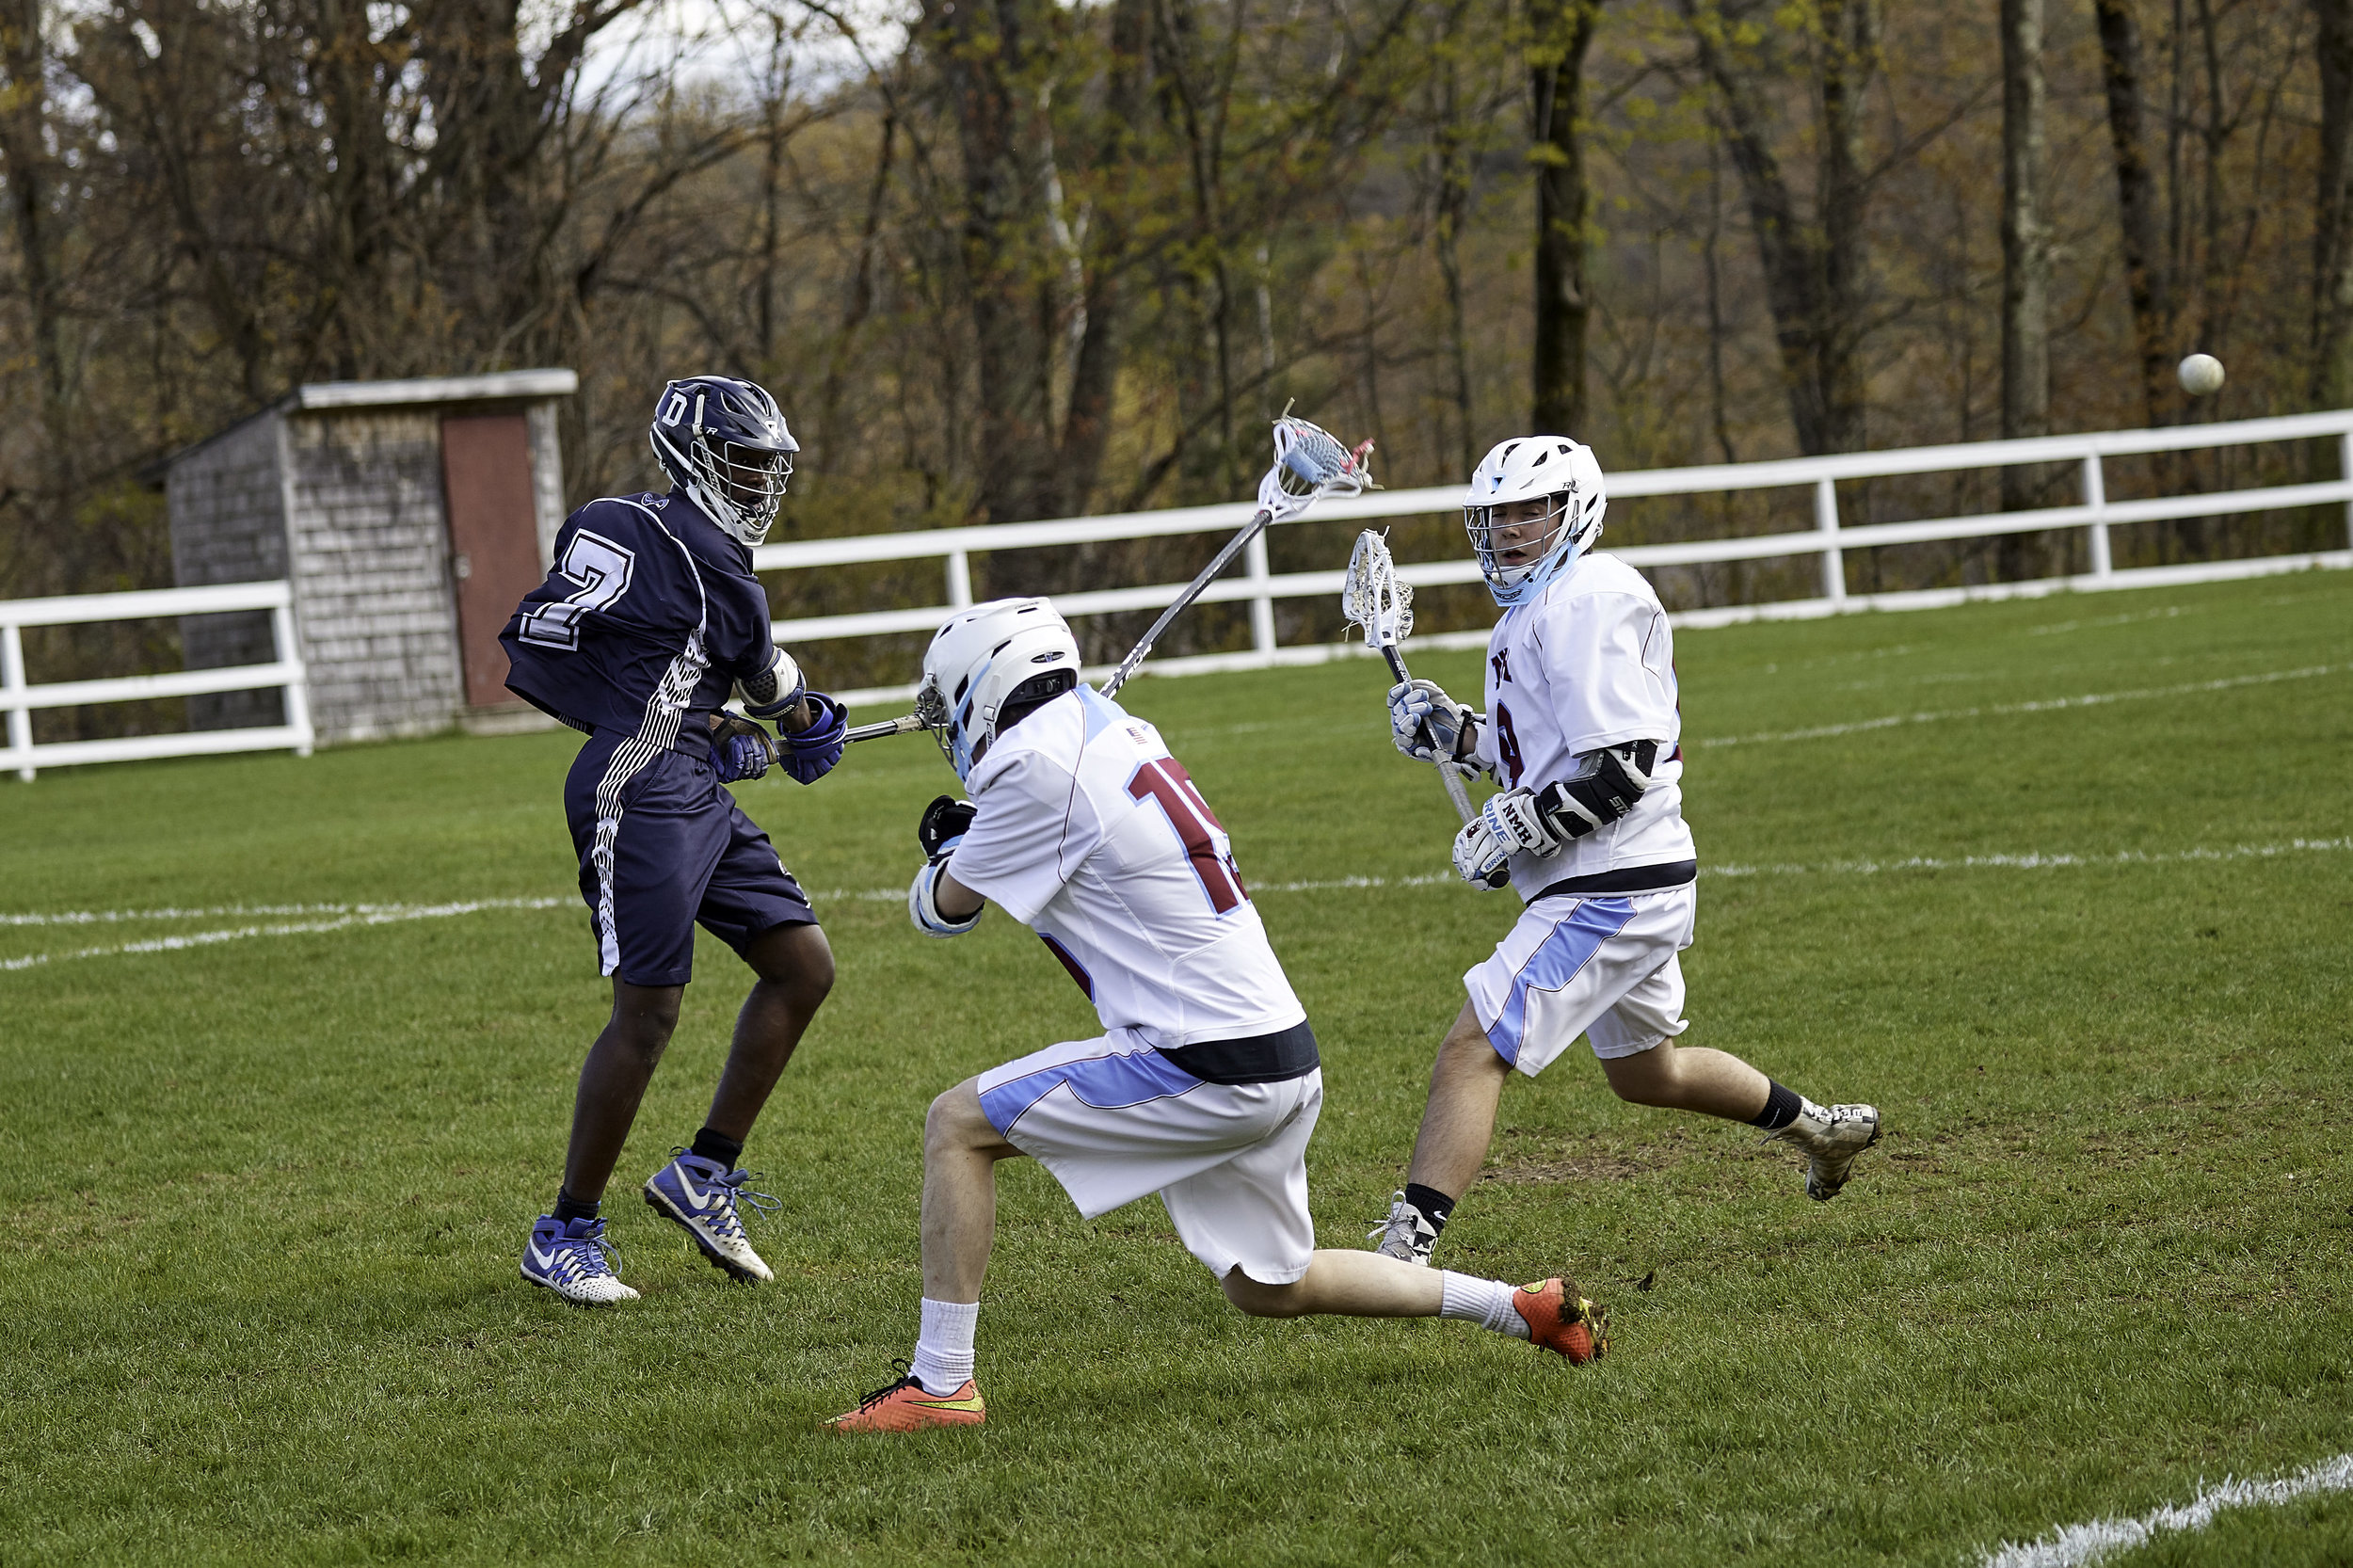 Boys Lax vs Northfield Mount Hermon JV - May 15 2019 - 0013.jpg